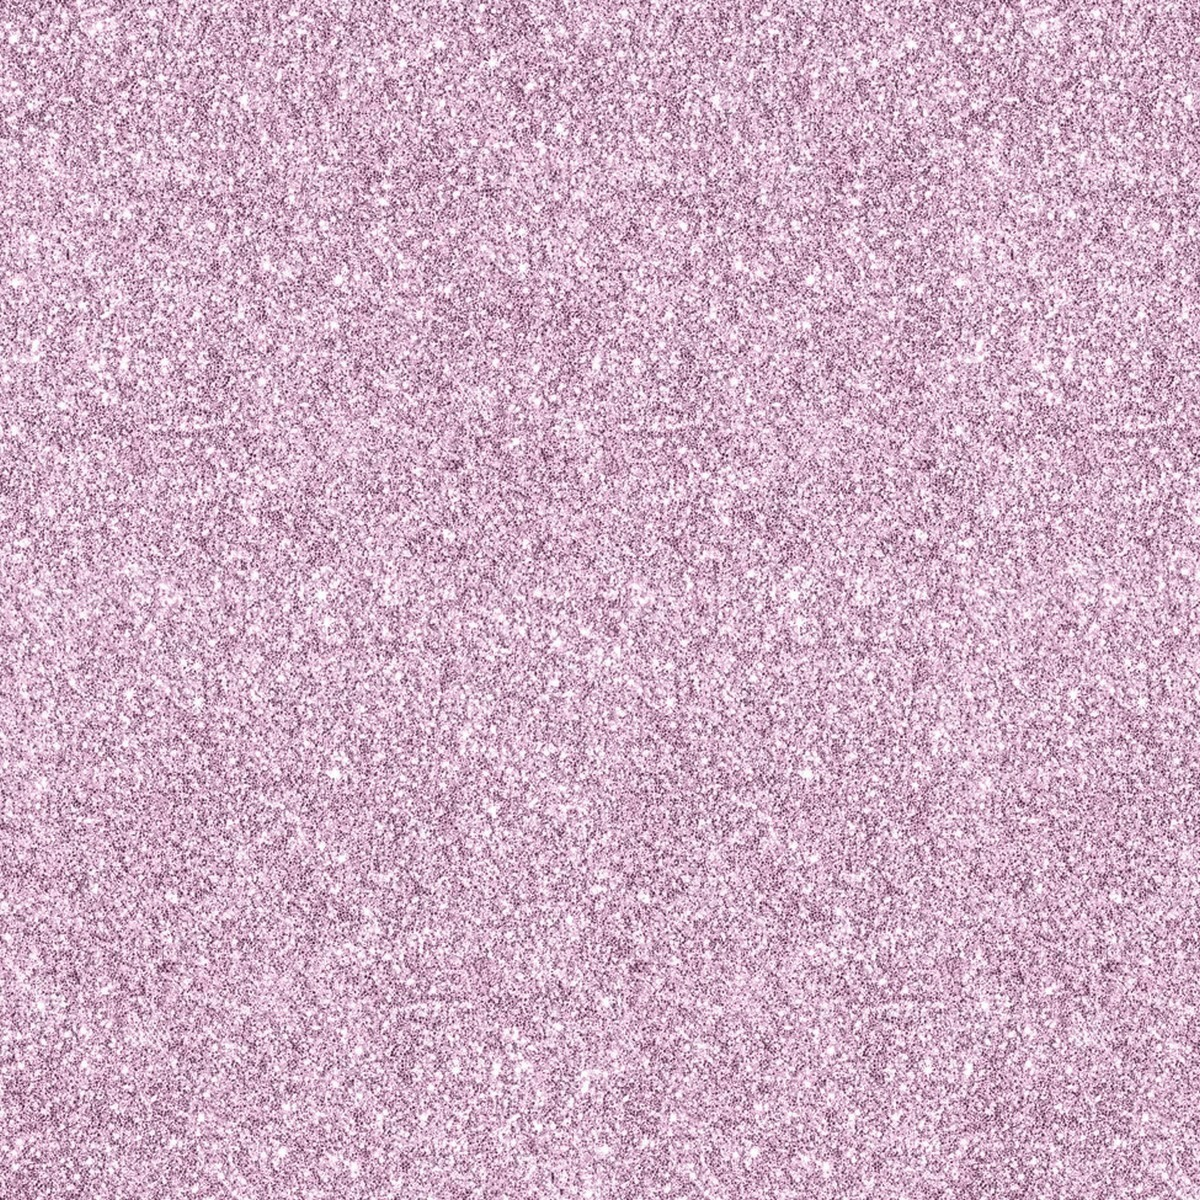 Glitter Wallpaper Heavyweight Vinyl Shiny Sparkle 6 Colours Available By Muriva